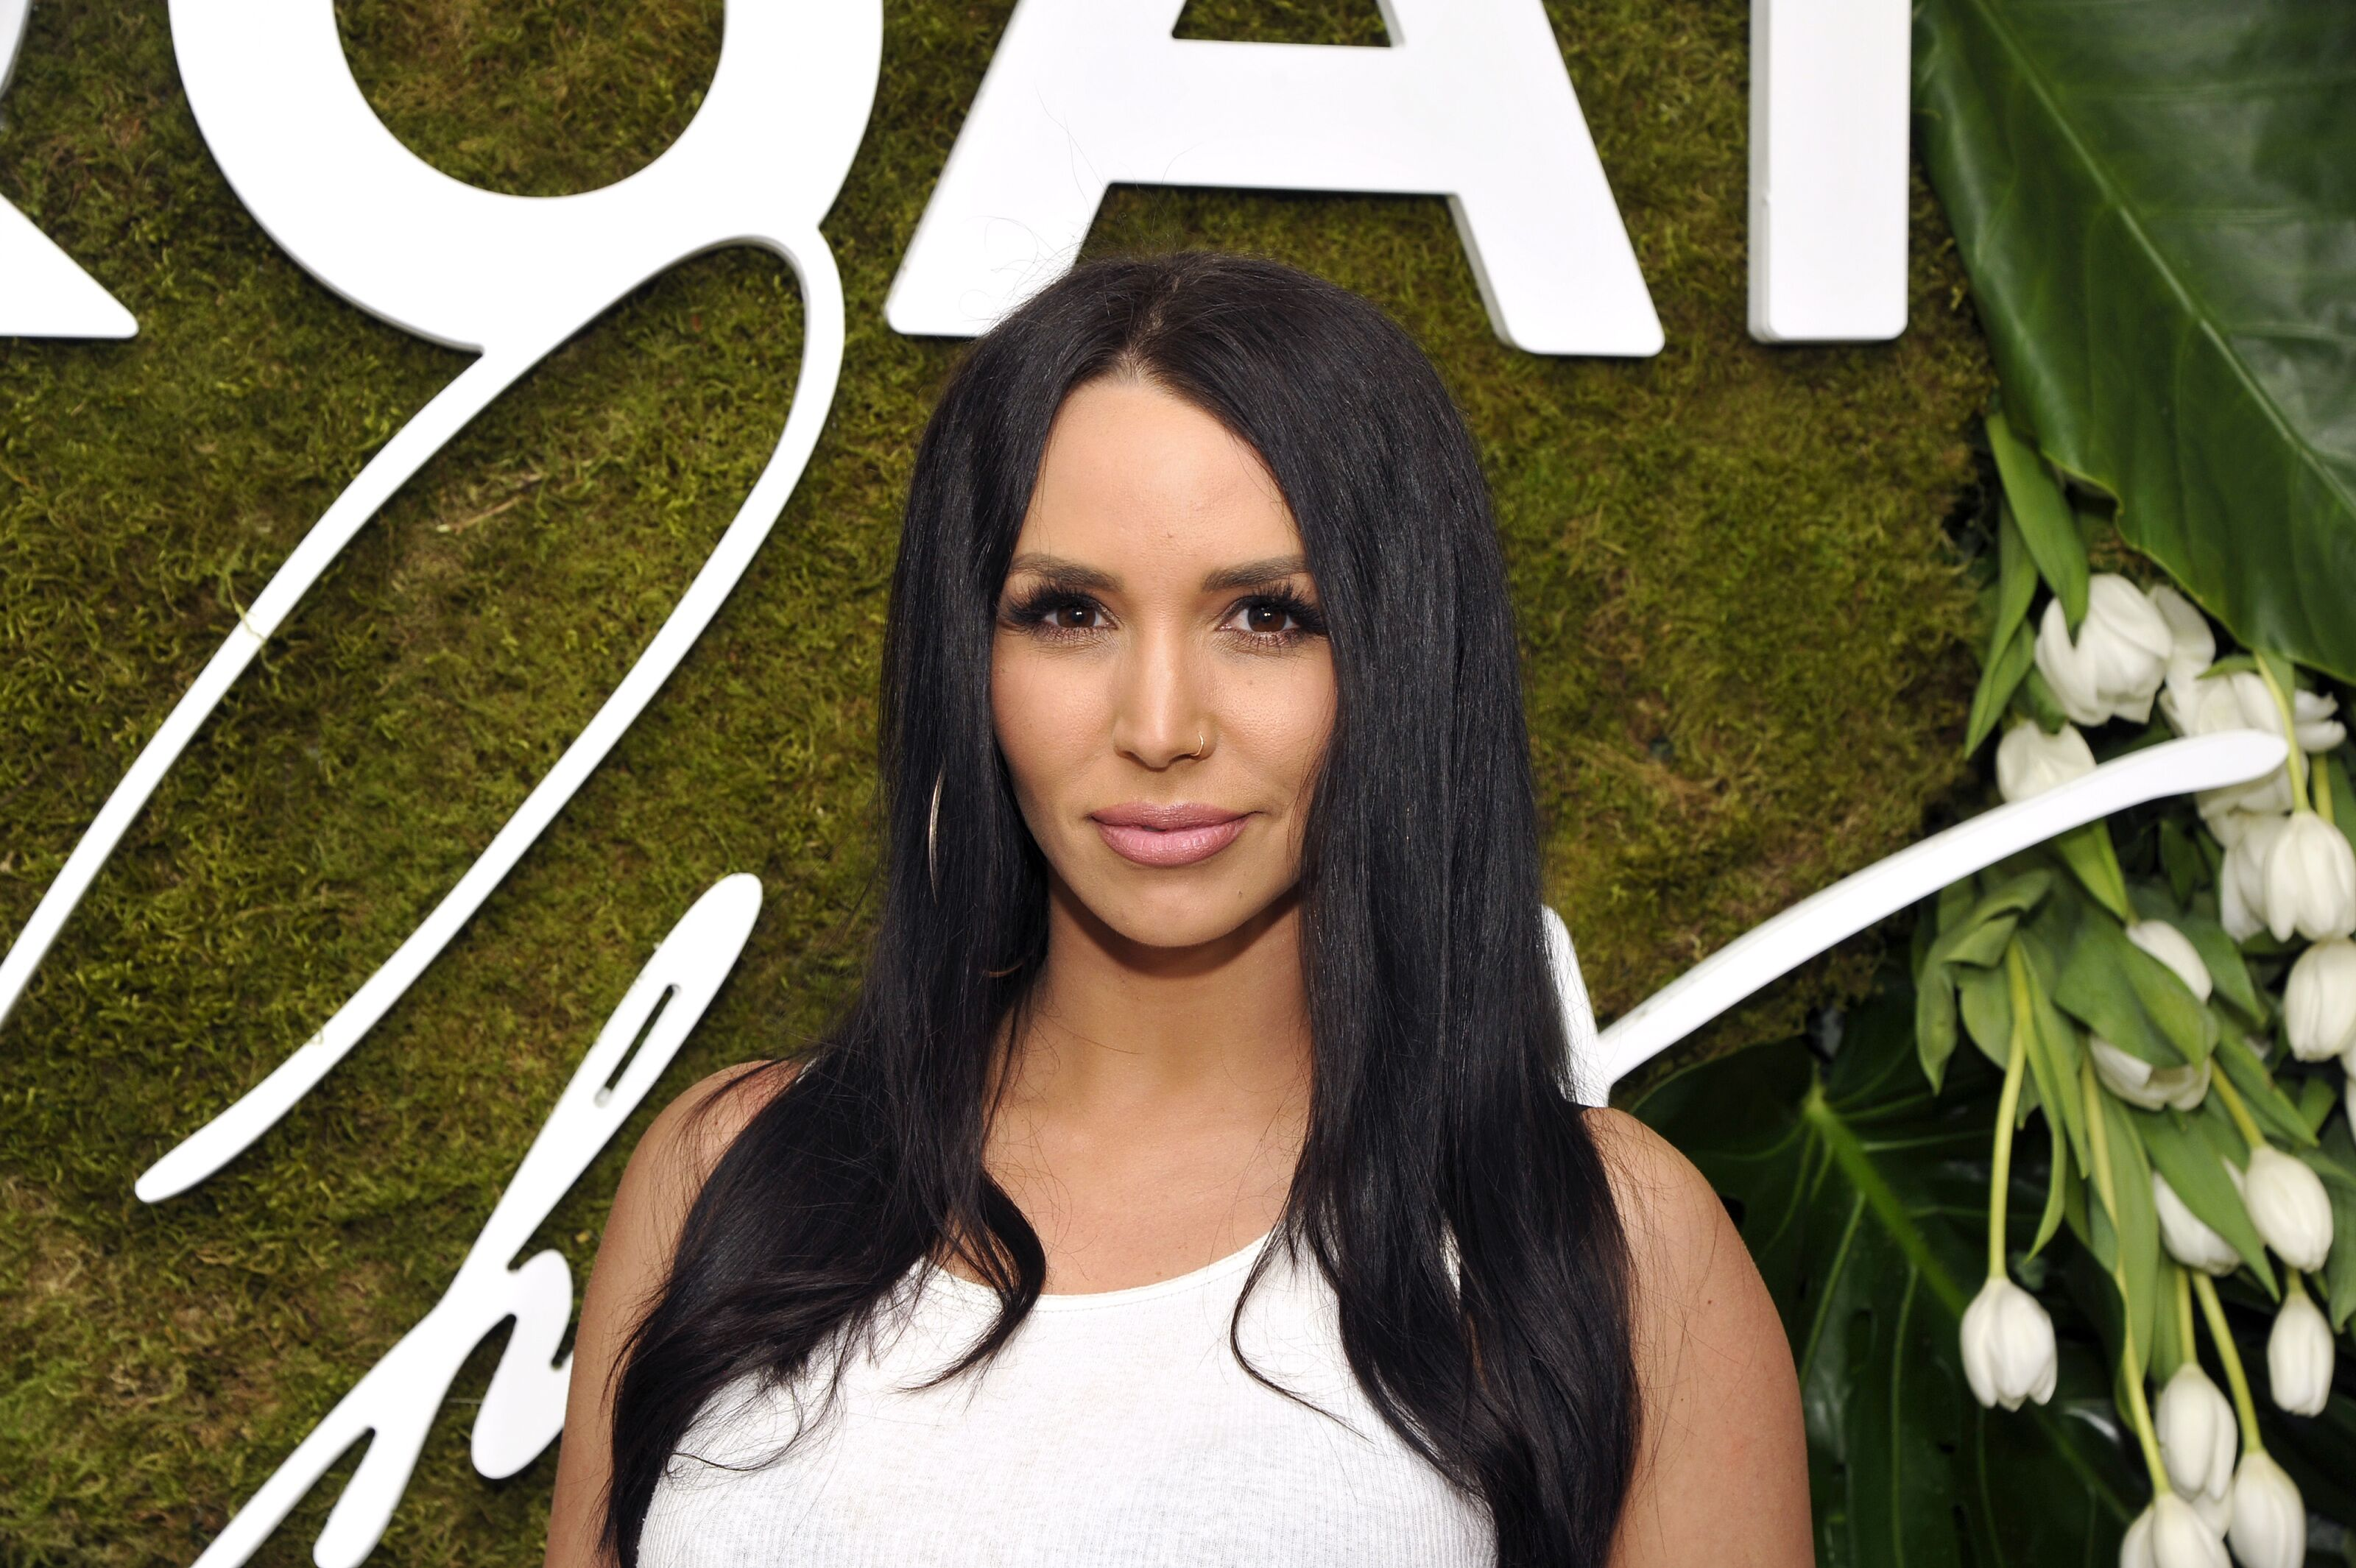 Vanderpump Rules: Is Scheana Shay finally the queen bee of SUR?